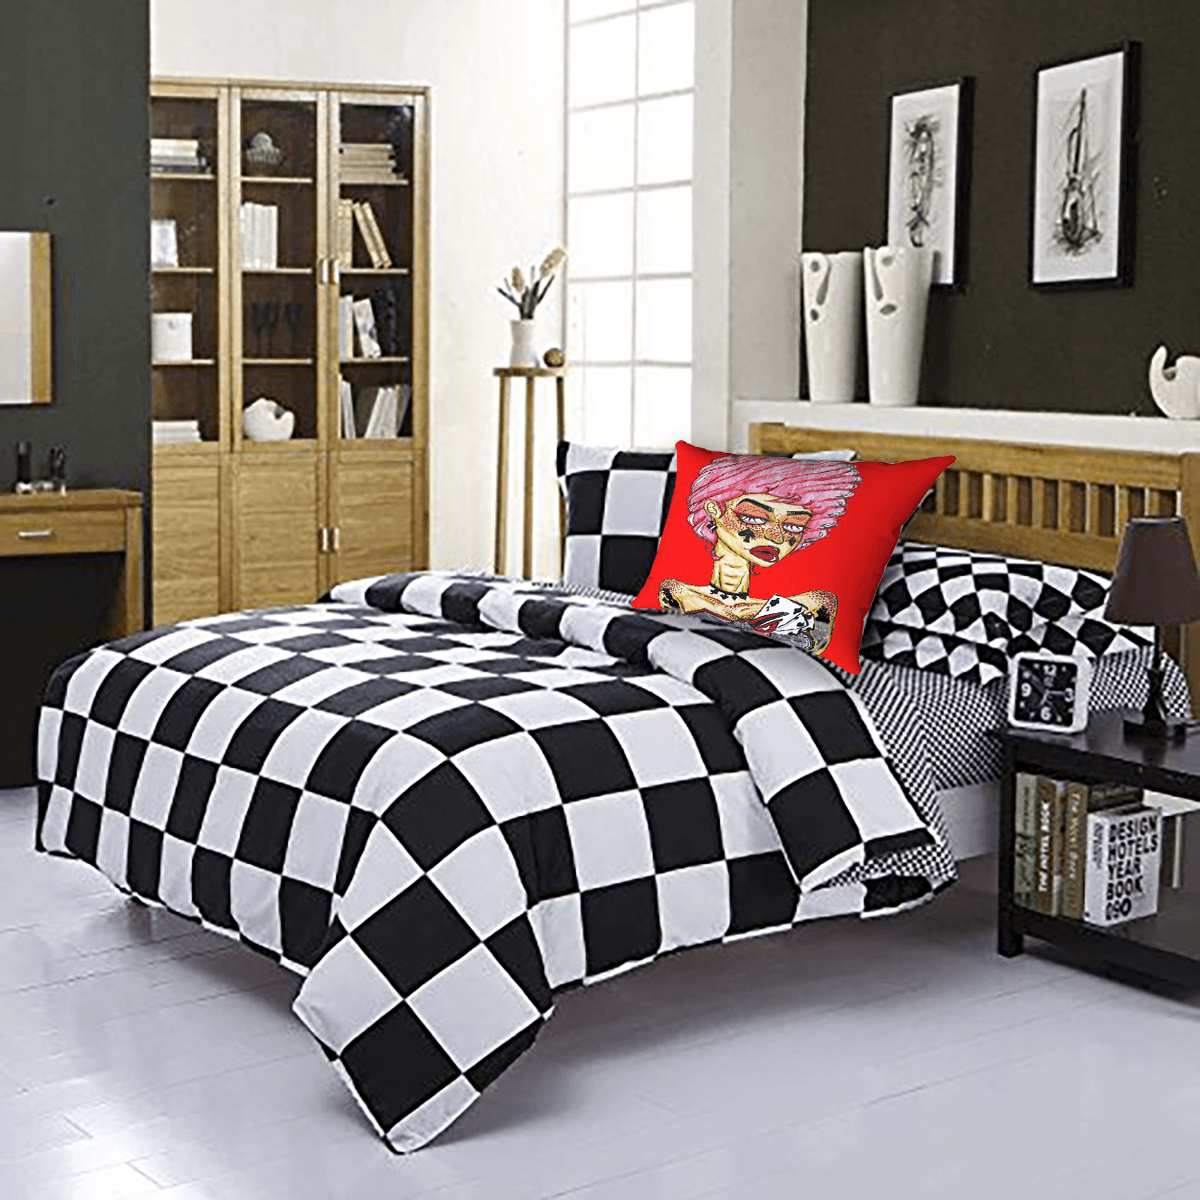 Cards Accent Pillow  by Ayanna Ali with  Home Secret Checkered Plaid Design 4PC Duvet Cover Set